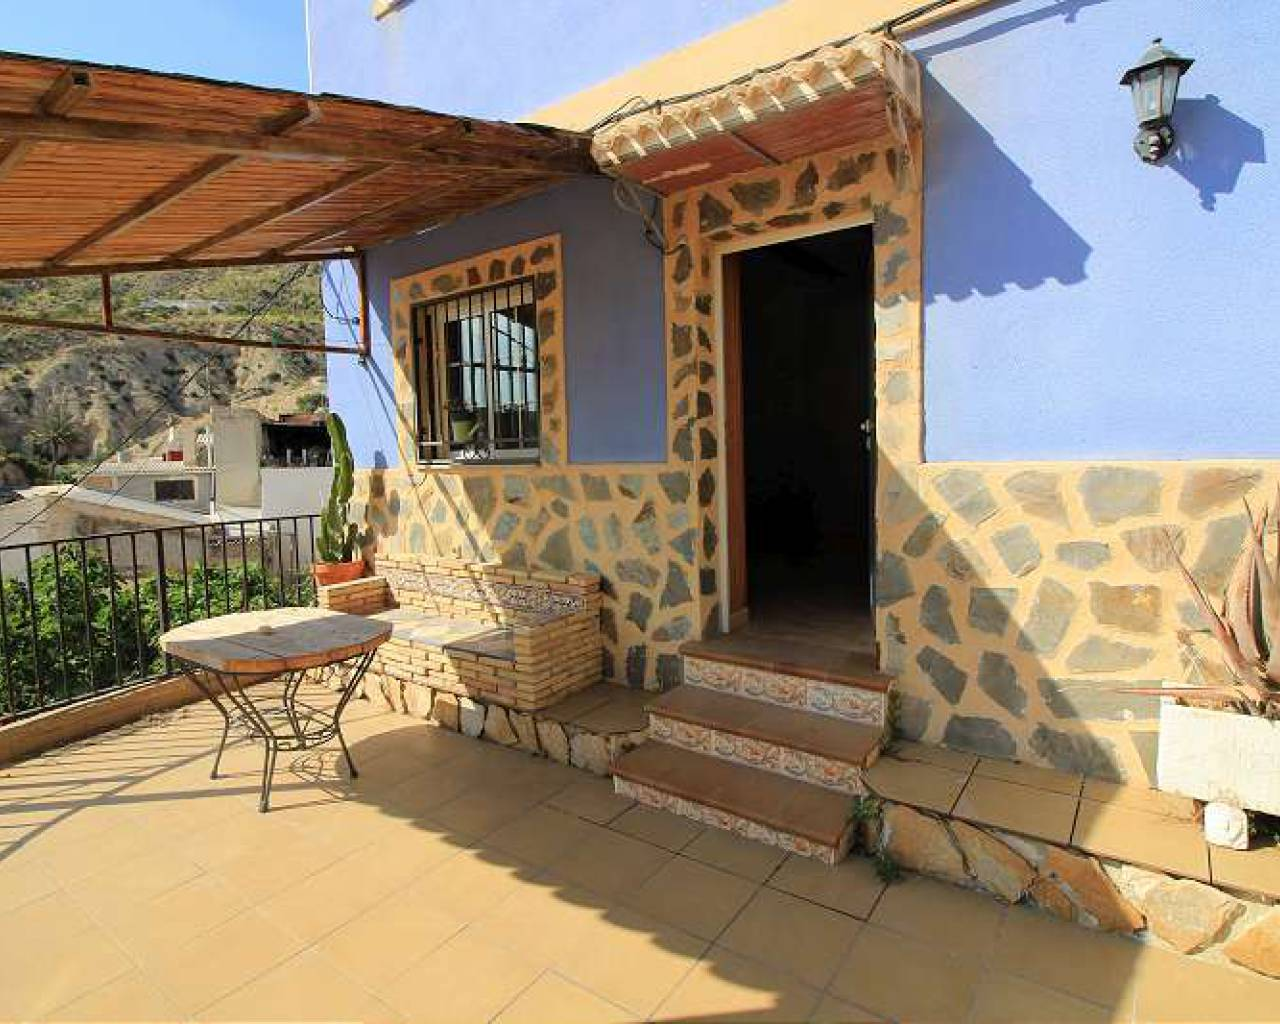 For Sale - Town House - Blanca - Set  in quiet outskirts of historic Blanca town.